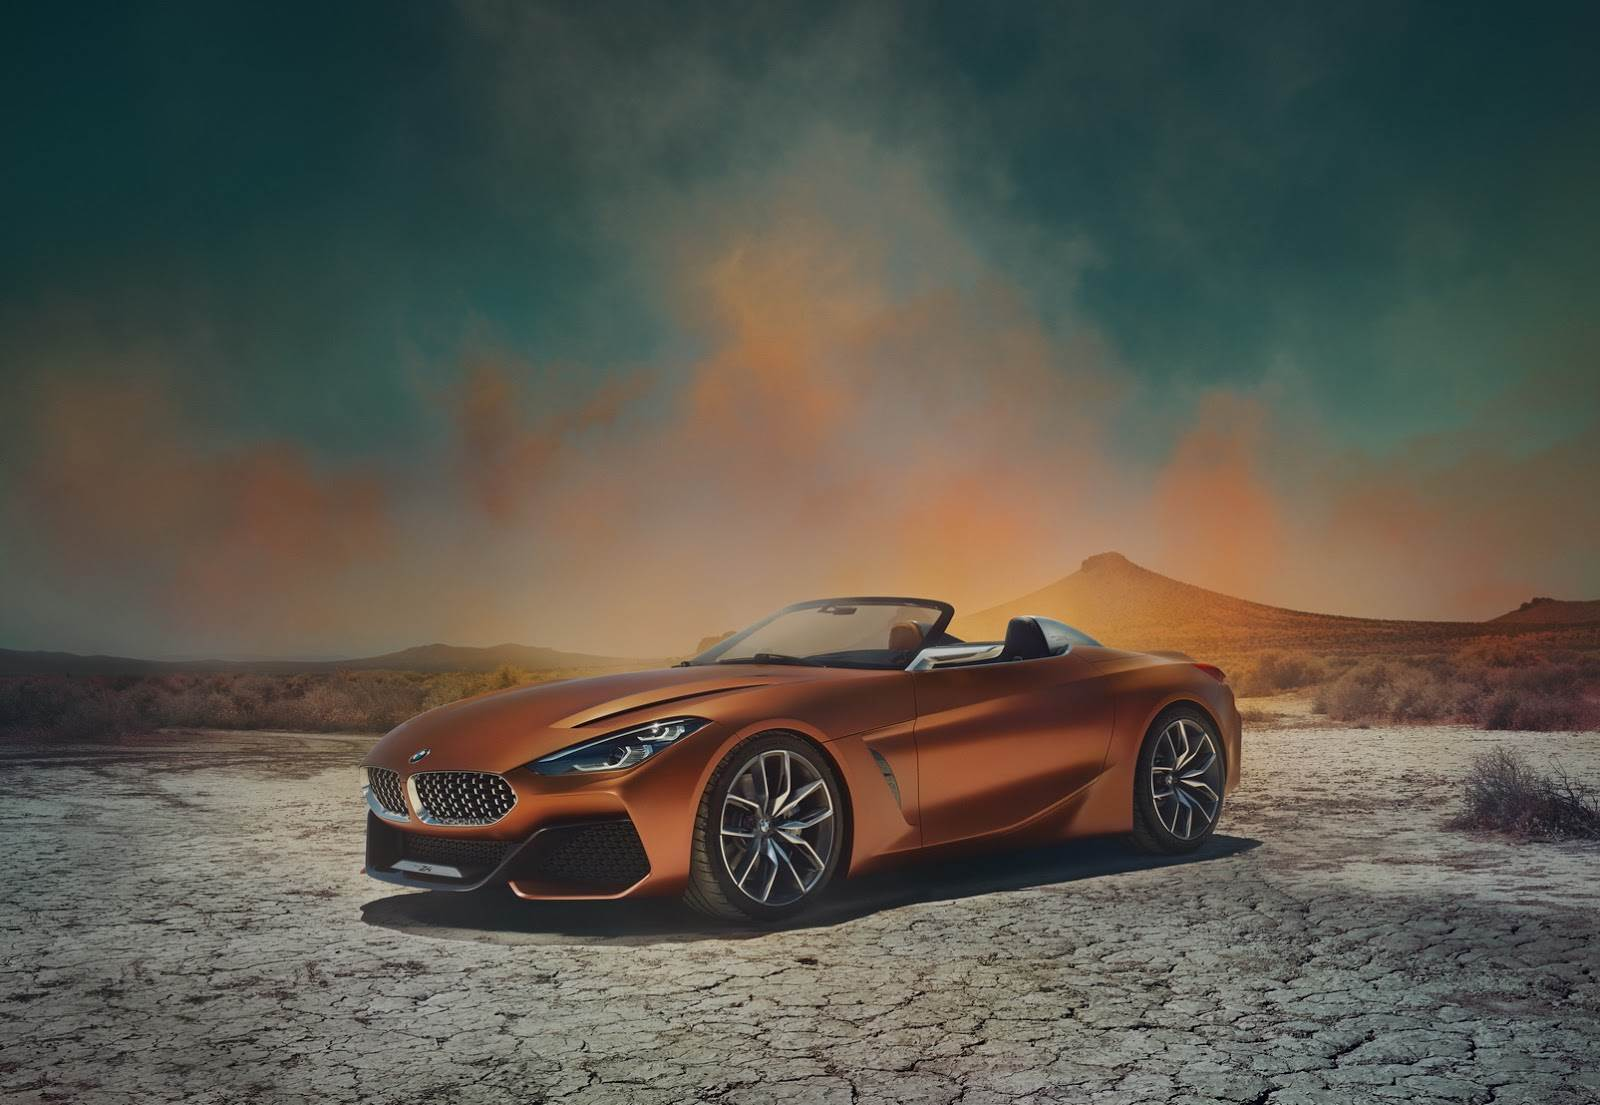 2017 BMW Z4 concept image gallery